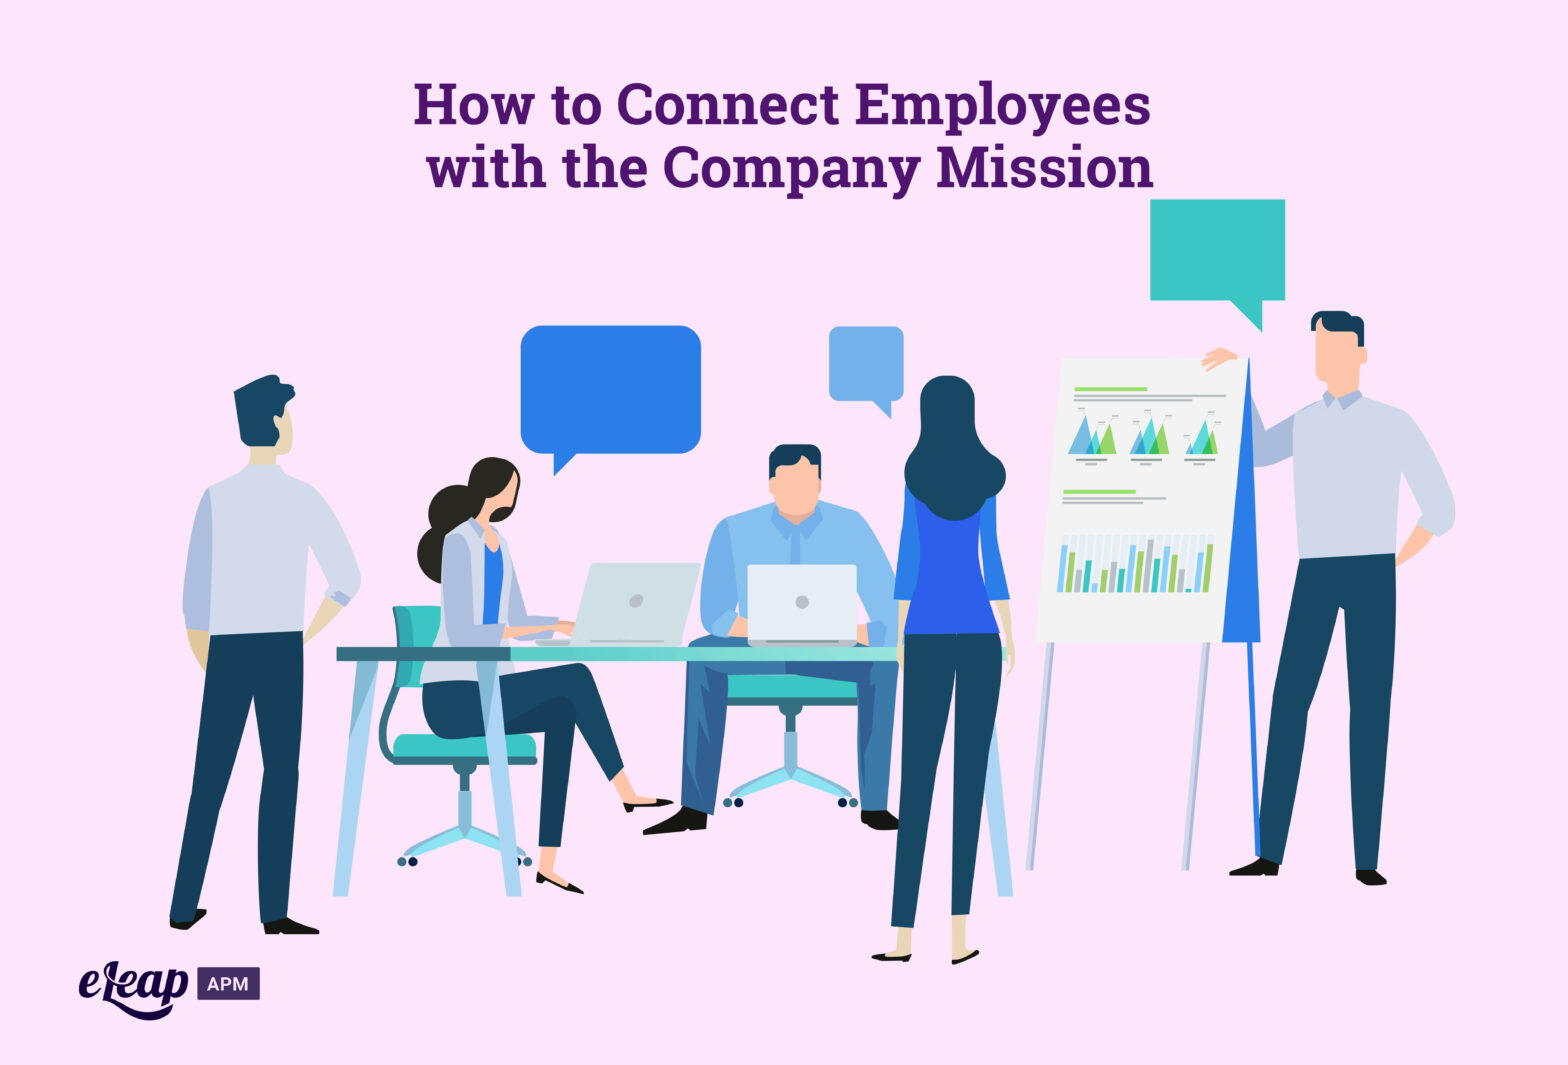 How to Connect Employees with the Company Mission